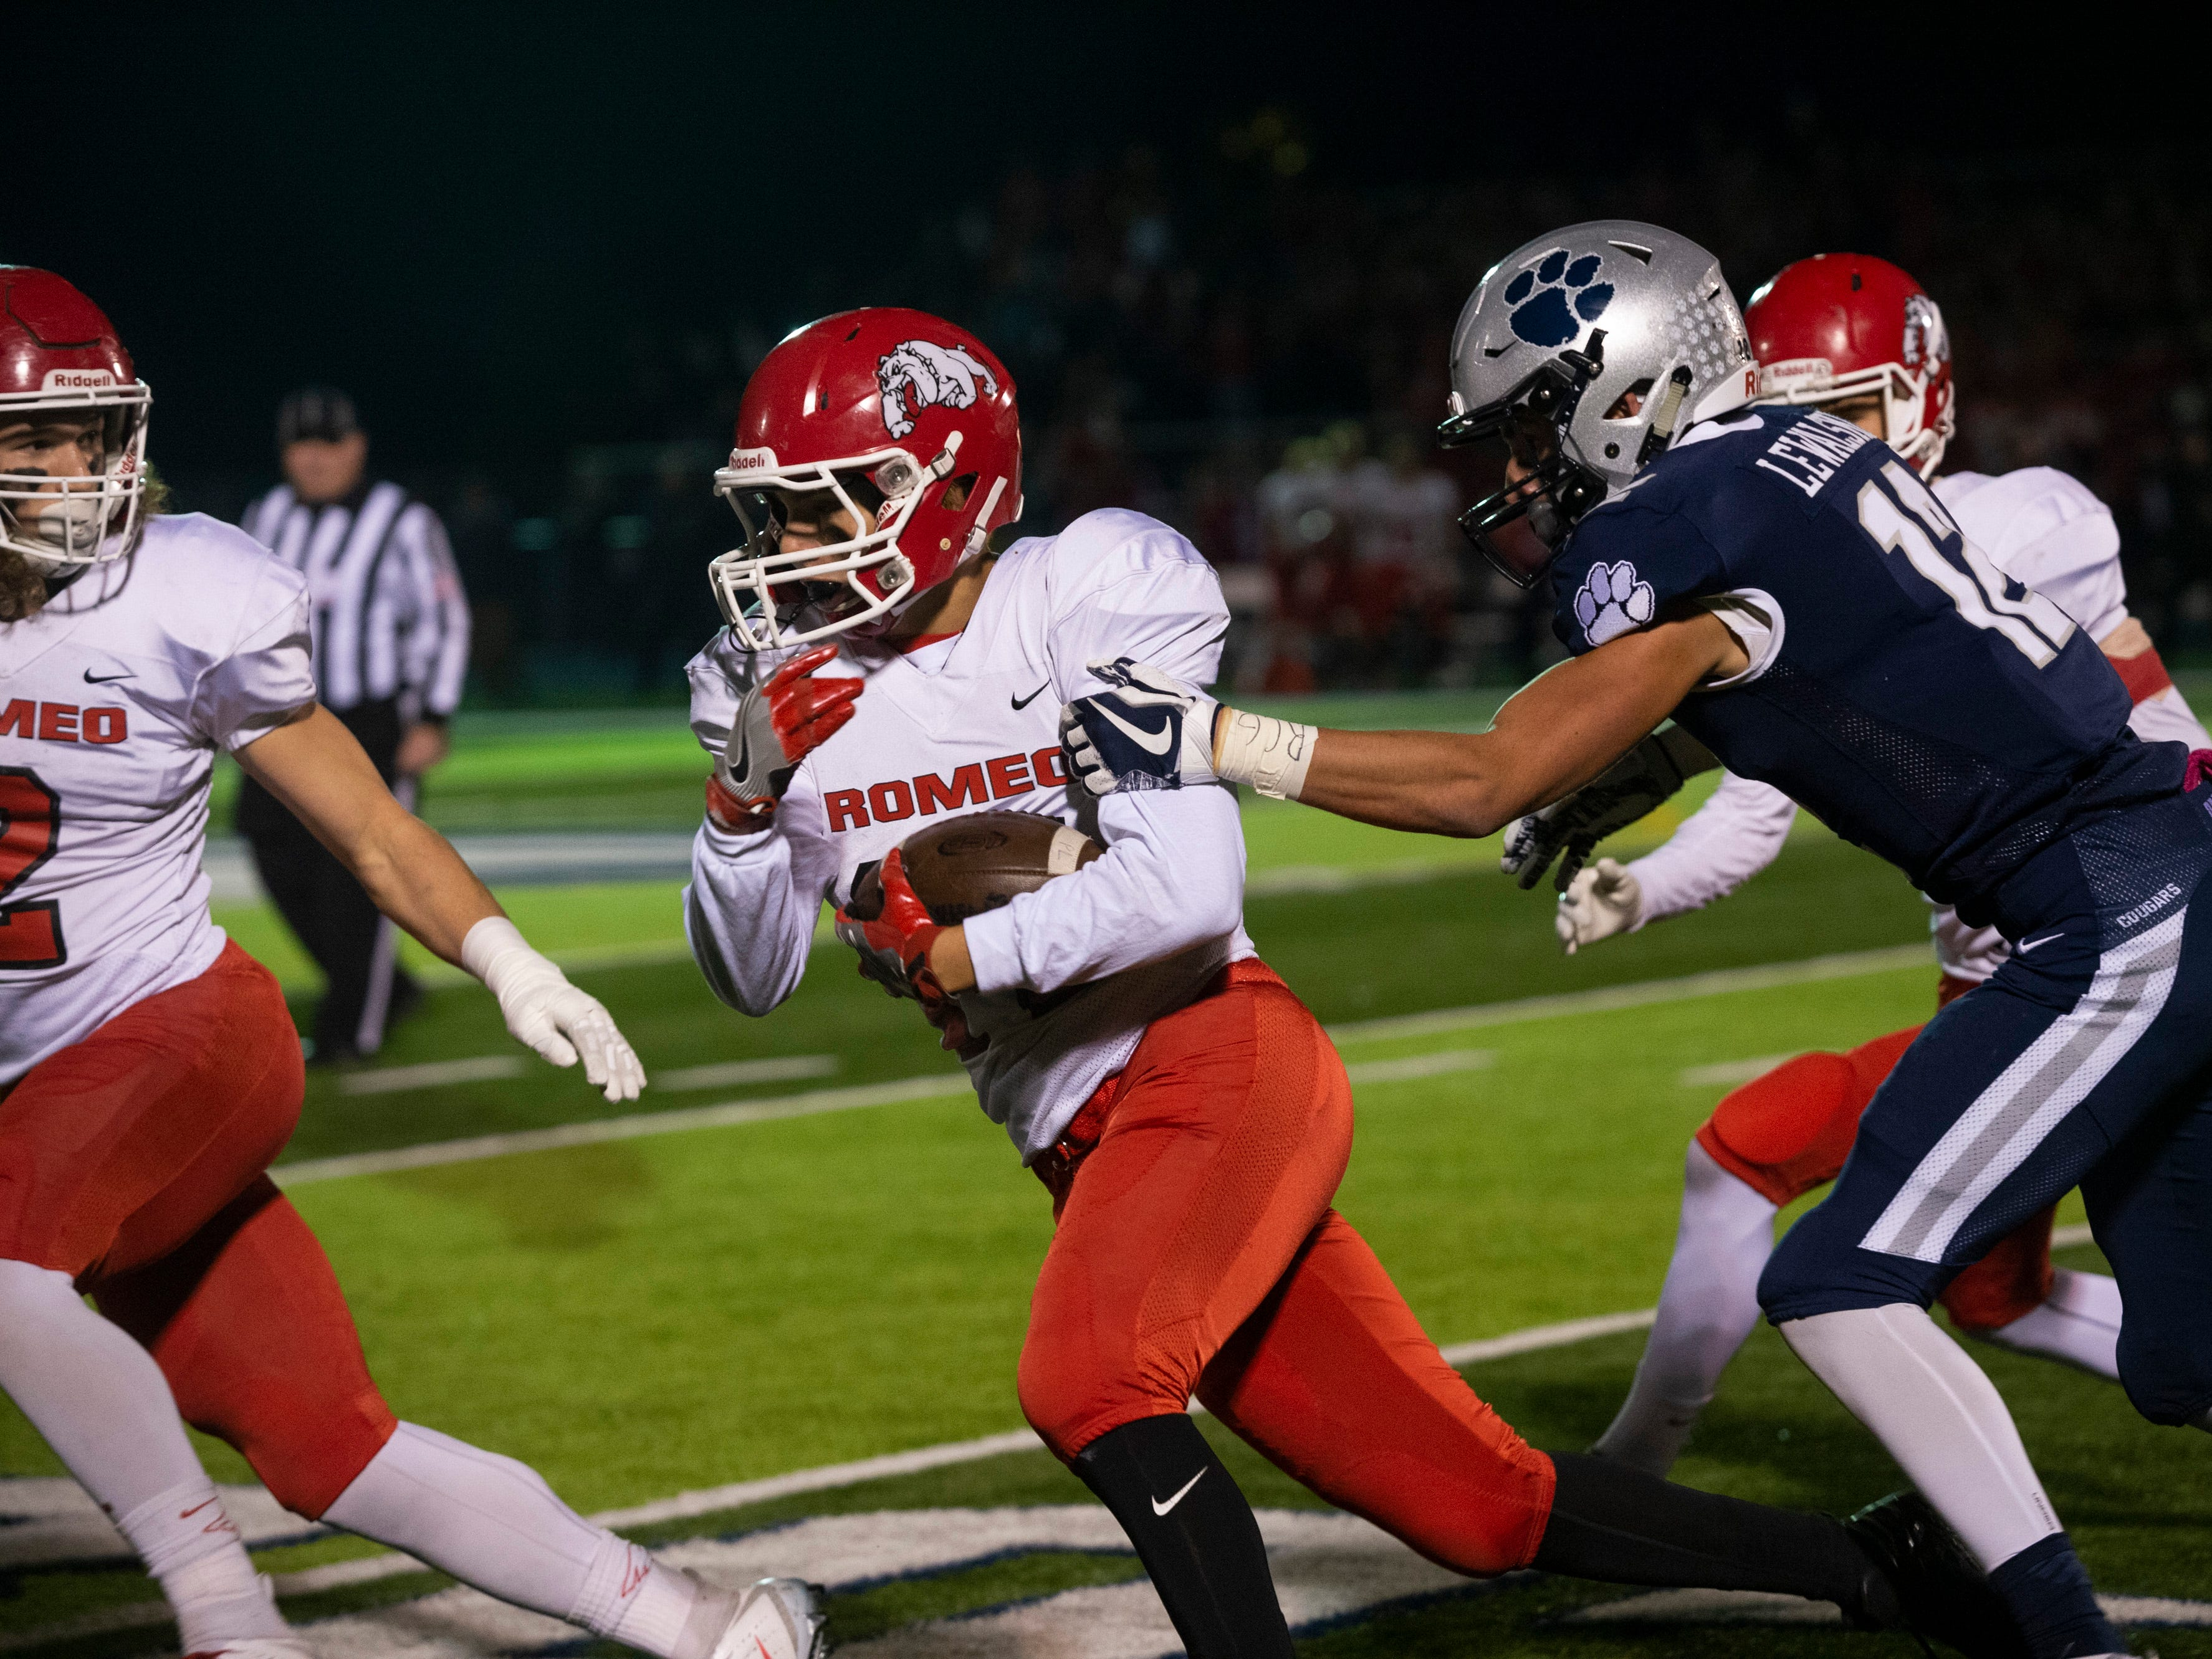 Romeo's Logan Iafrate moves with the ball as he is chased by Dakota's Ross Lewalski during the 1st quarter.